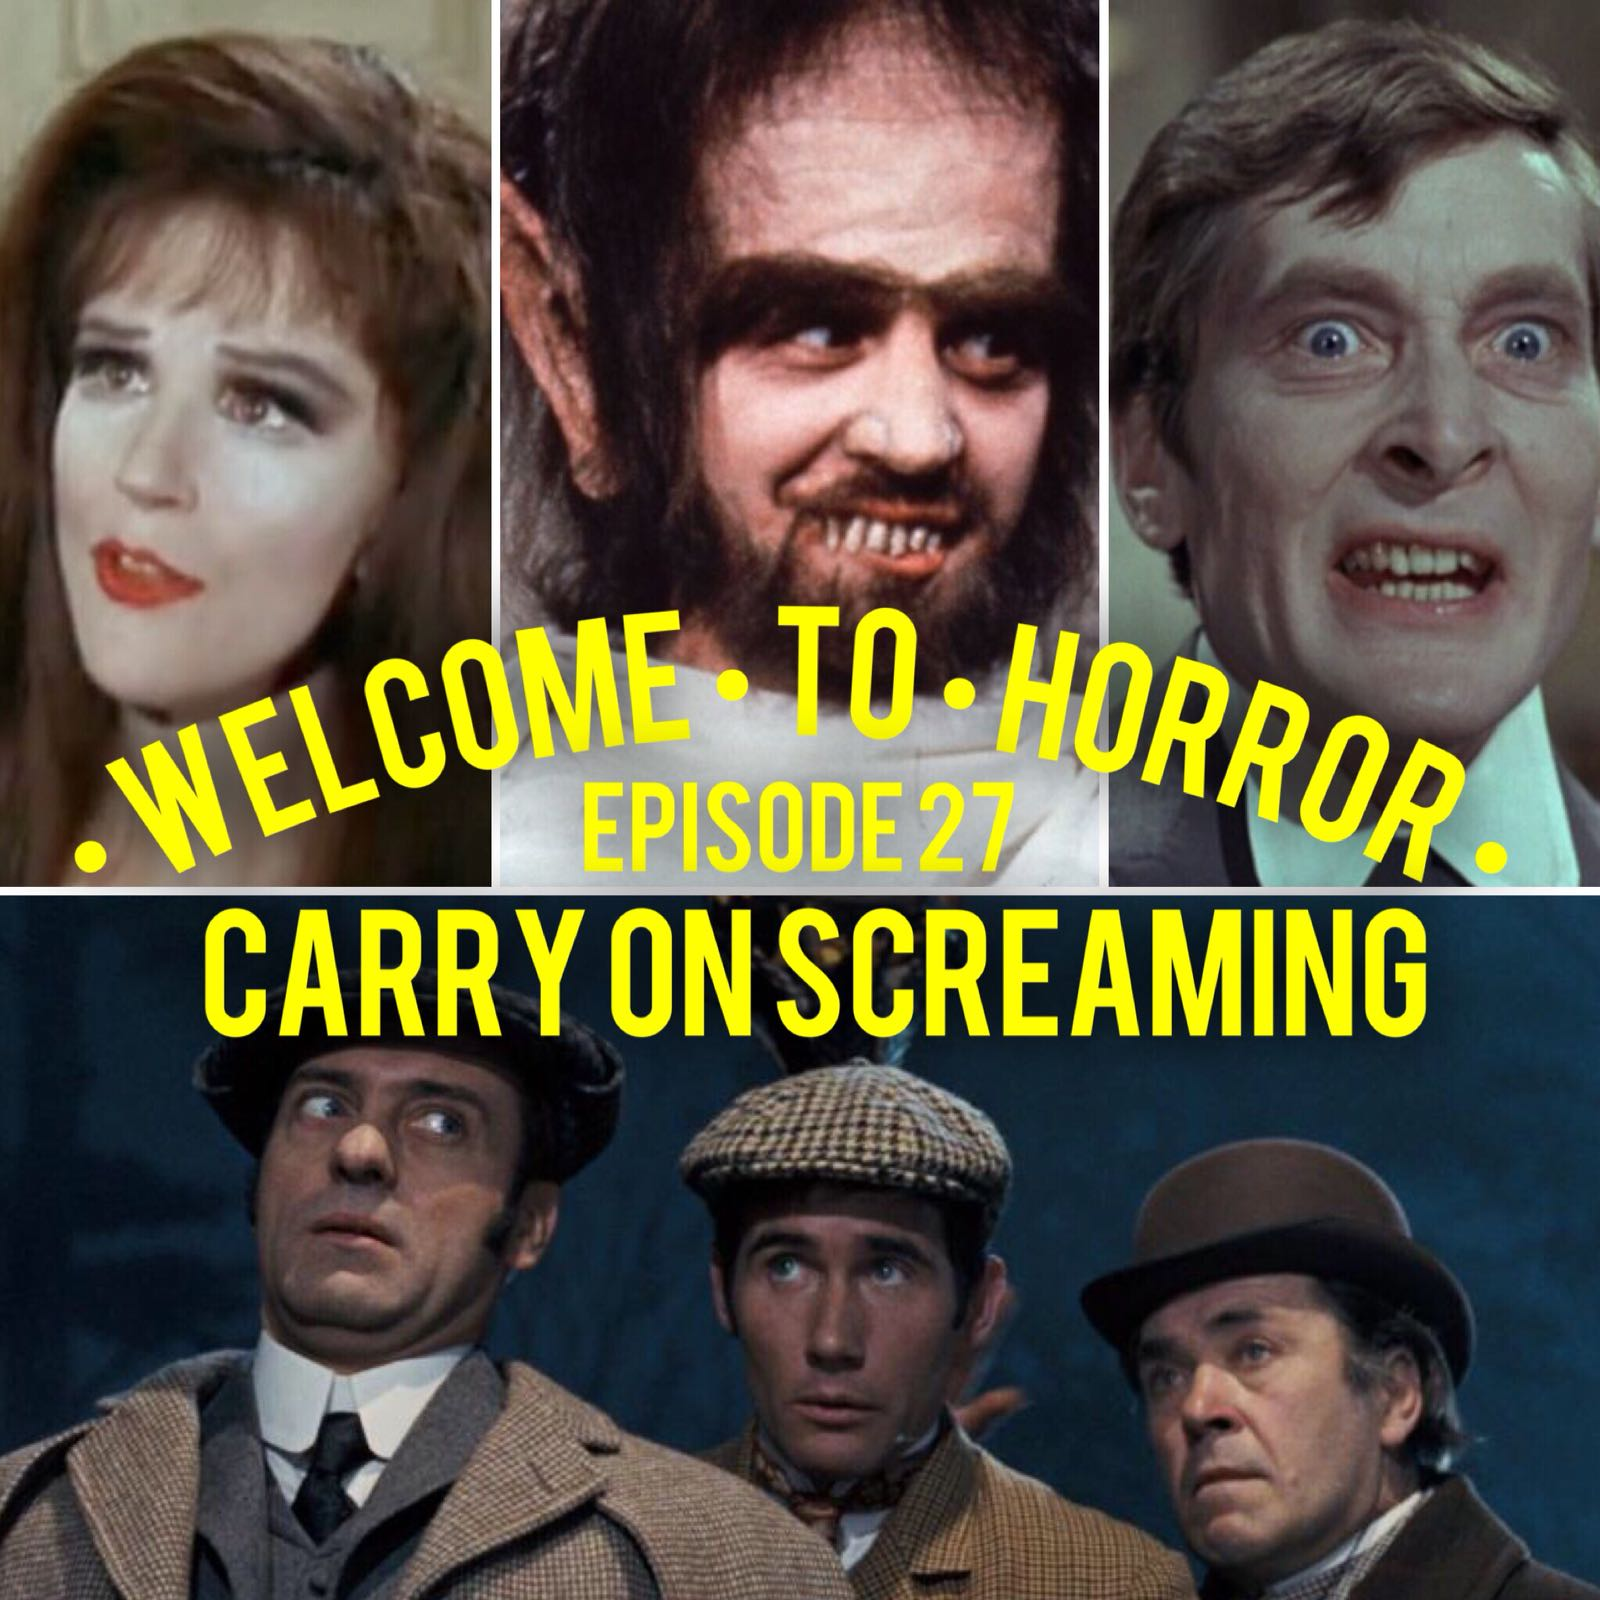 Carry On Screaming Welcome to Horror Episode 027